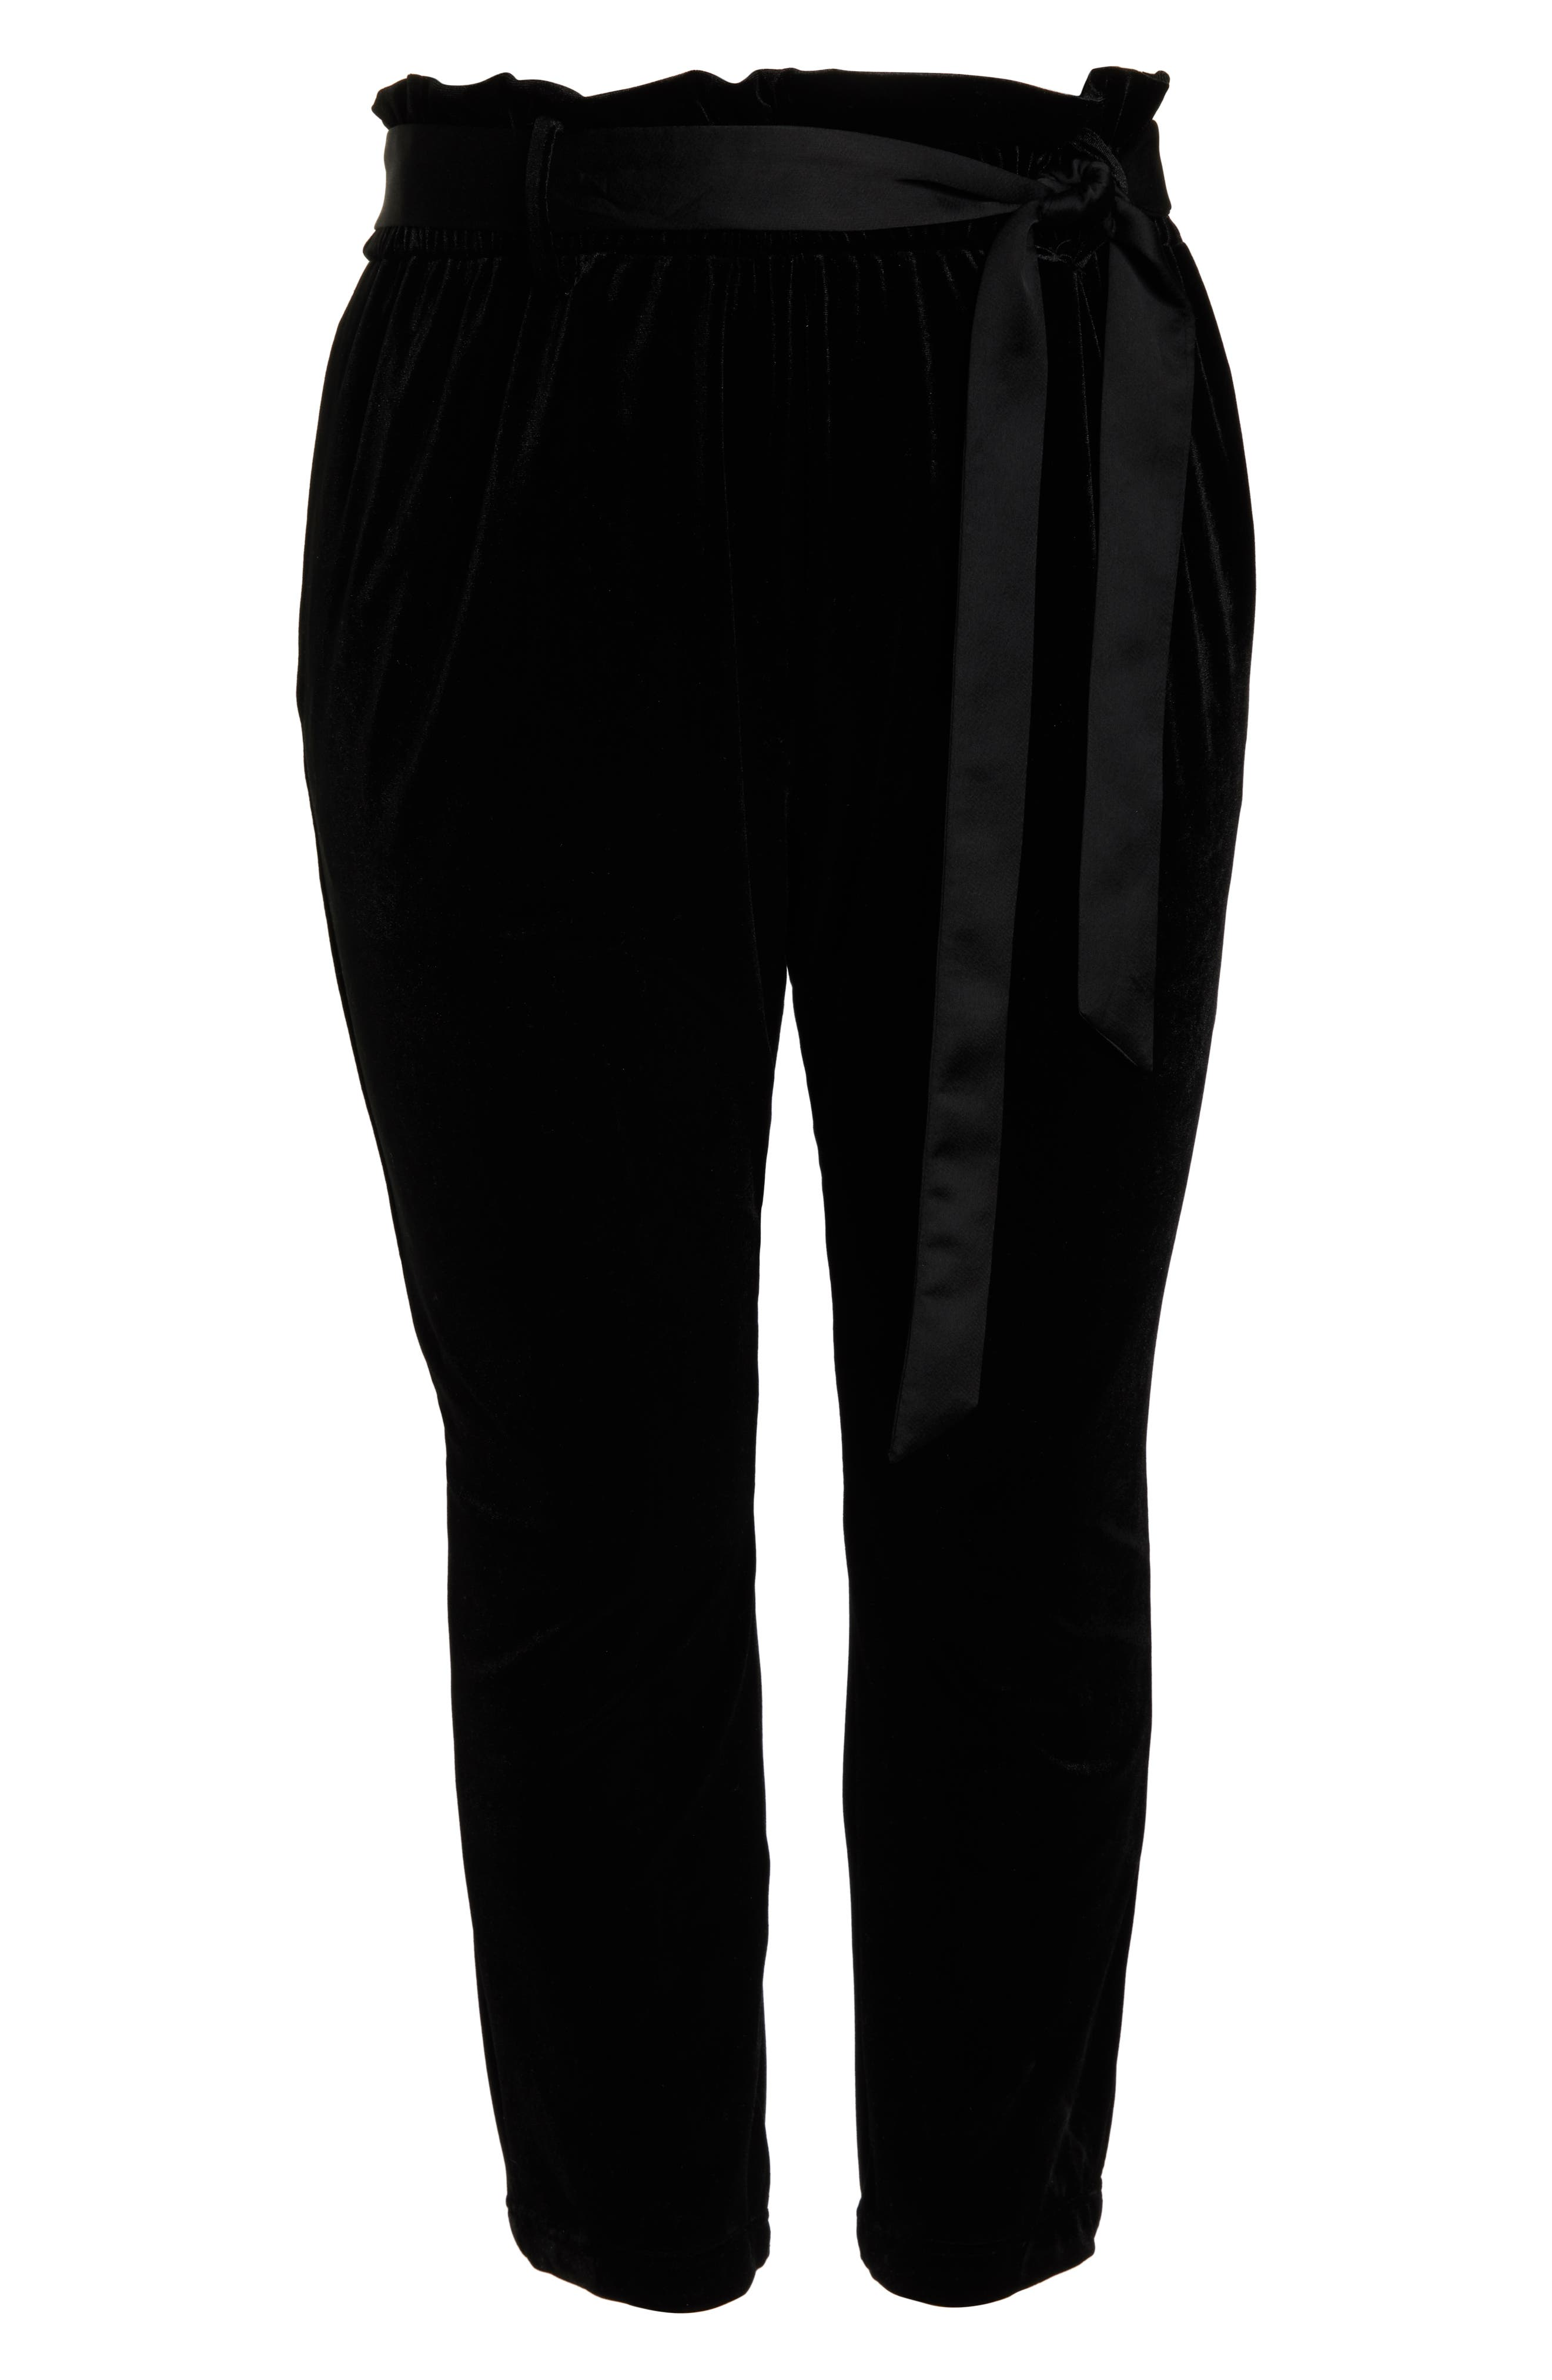 Tie Waist Velvet Pants,                             Alternate thumbnail 13, color,                             001